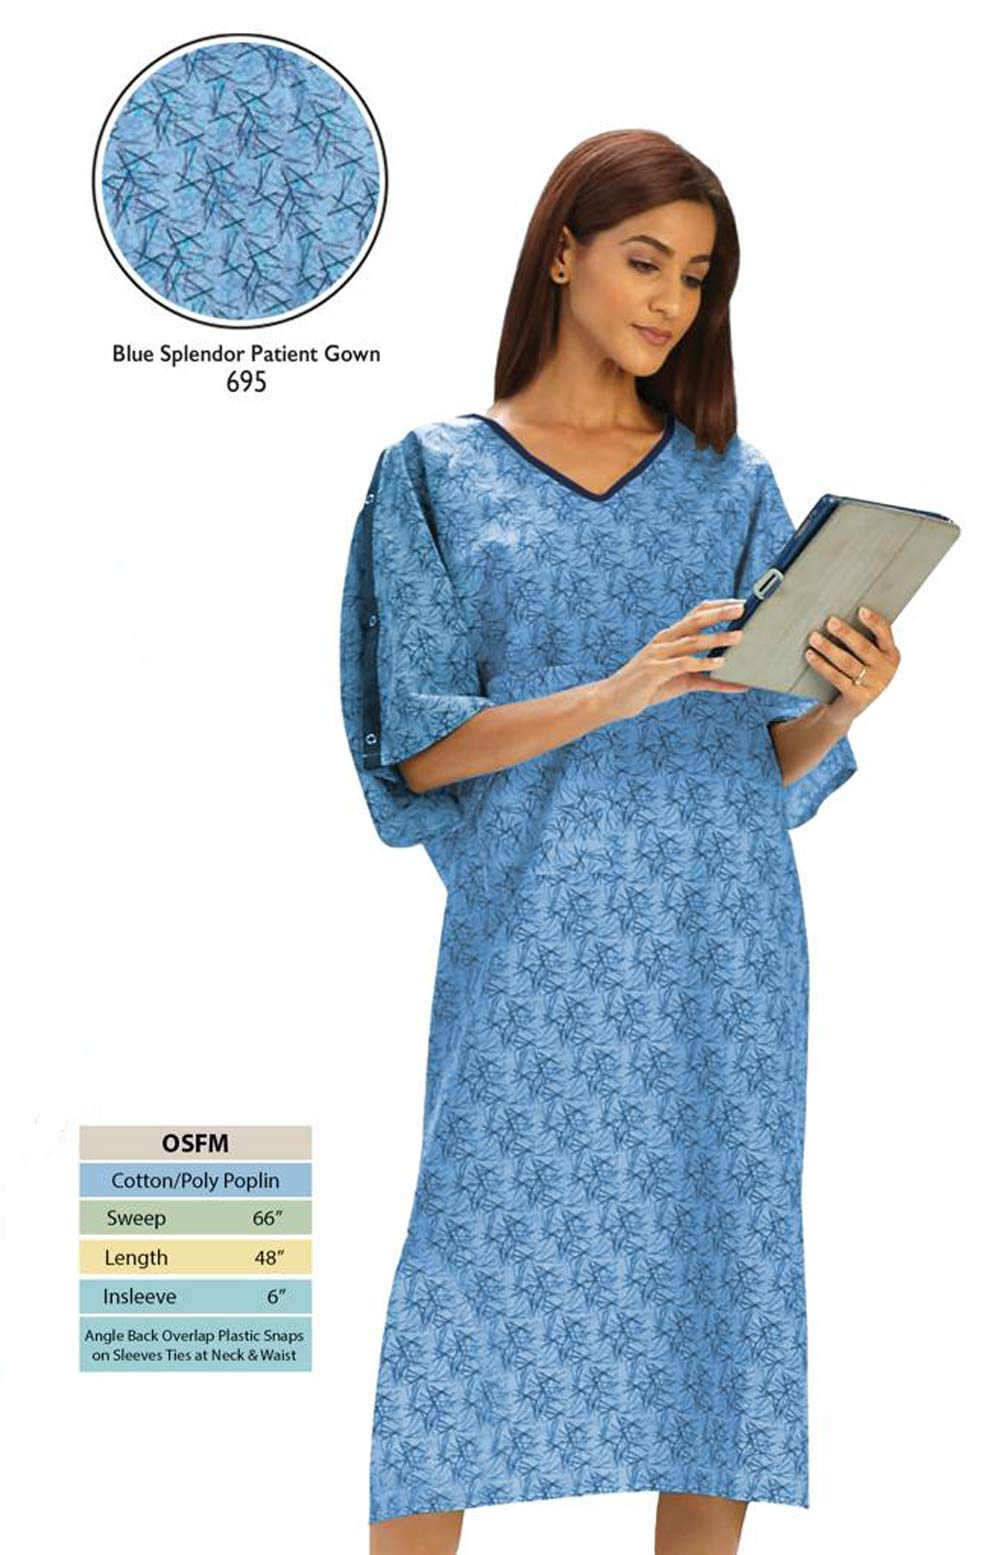 Personal Touch Unisex Hospital Patient Gown Plastic Snap IV Sleeves with Telemetry Pocket - Blue Splendor Print - One Size Pack of 4